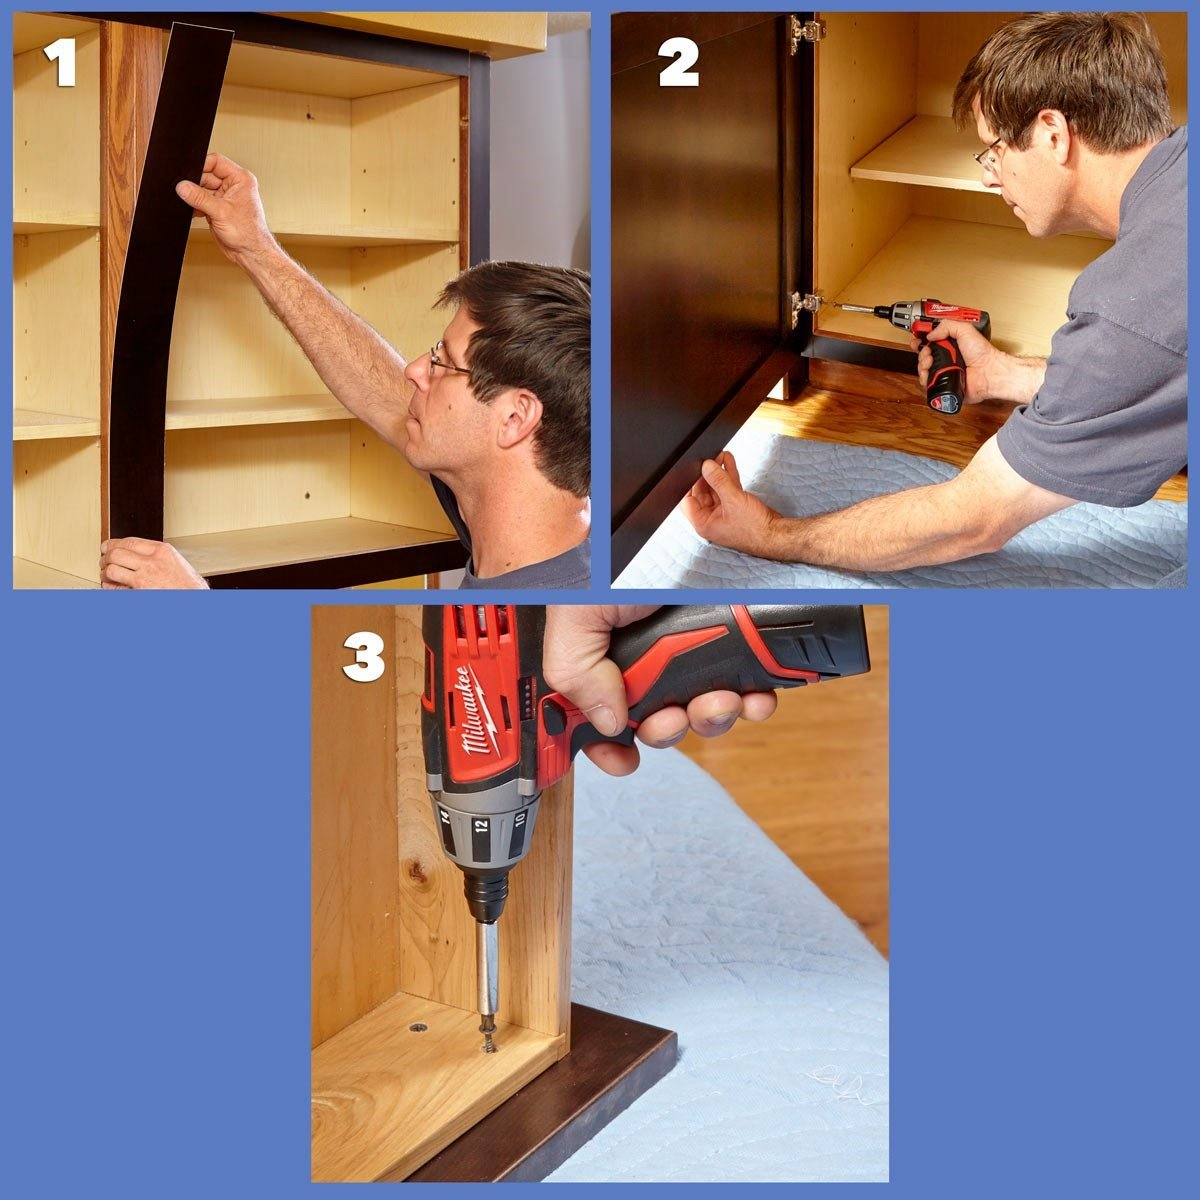 8 Reface the Cabinets with Veneer via simphome